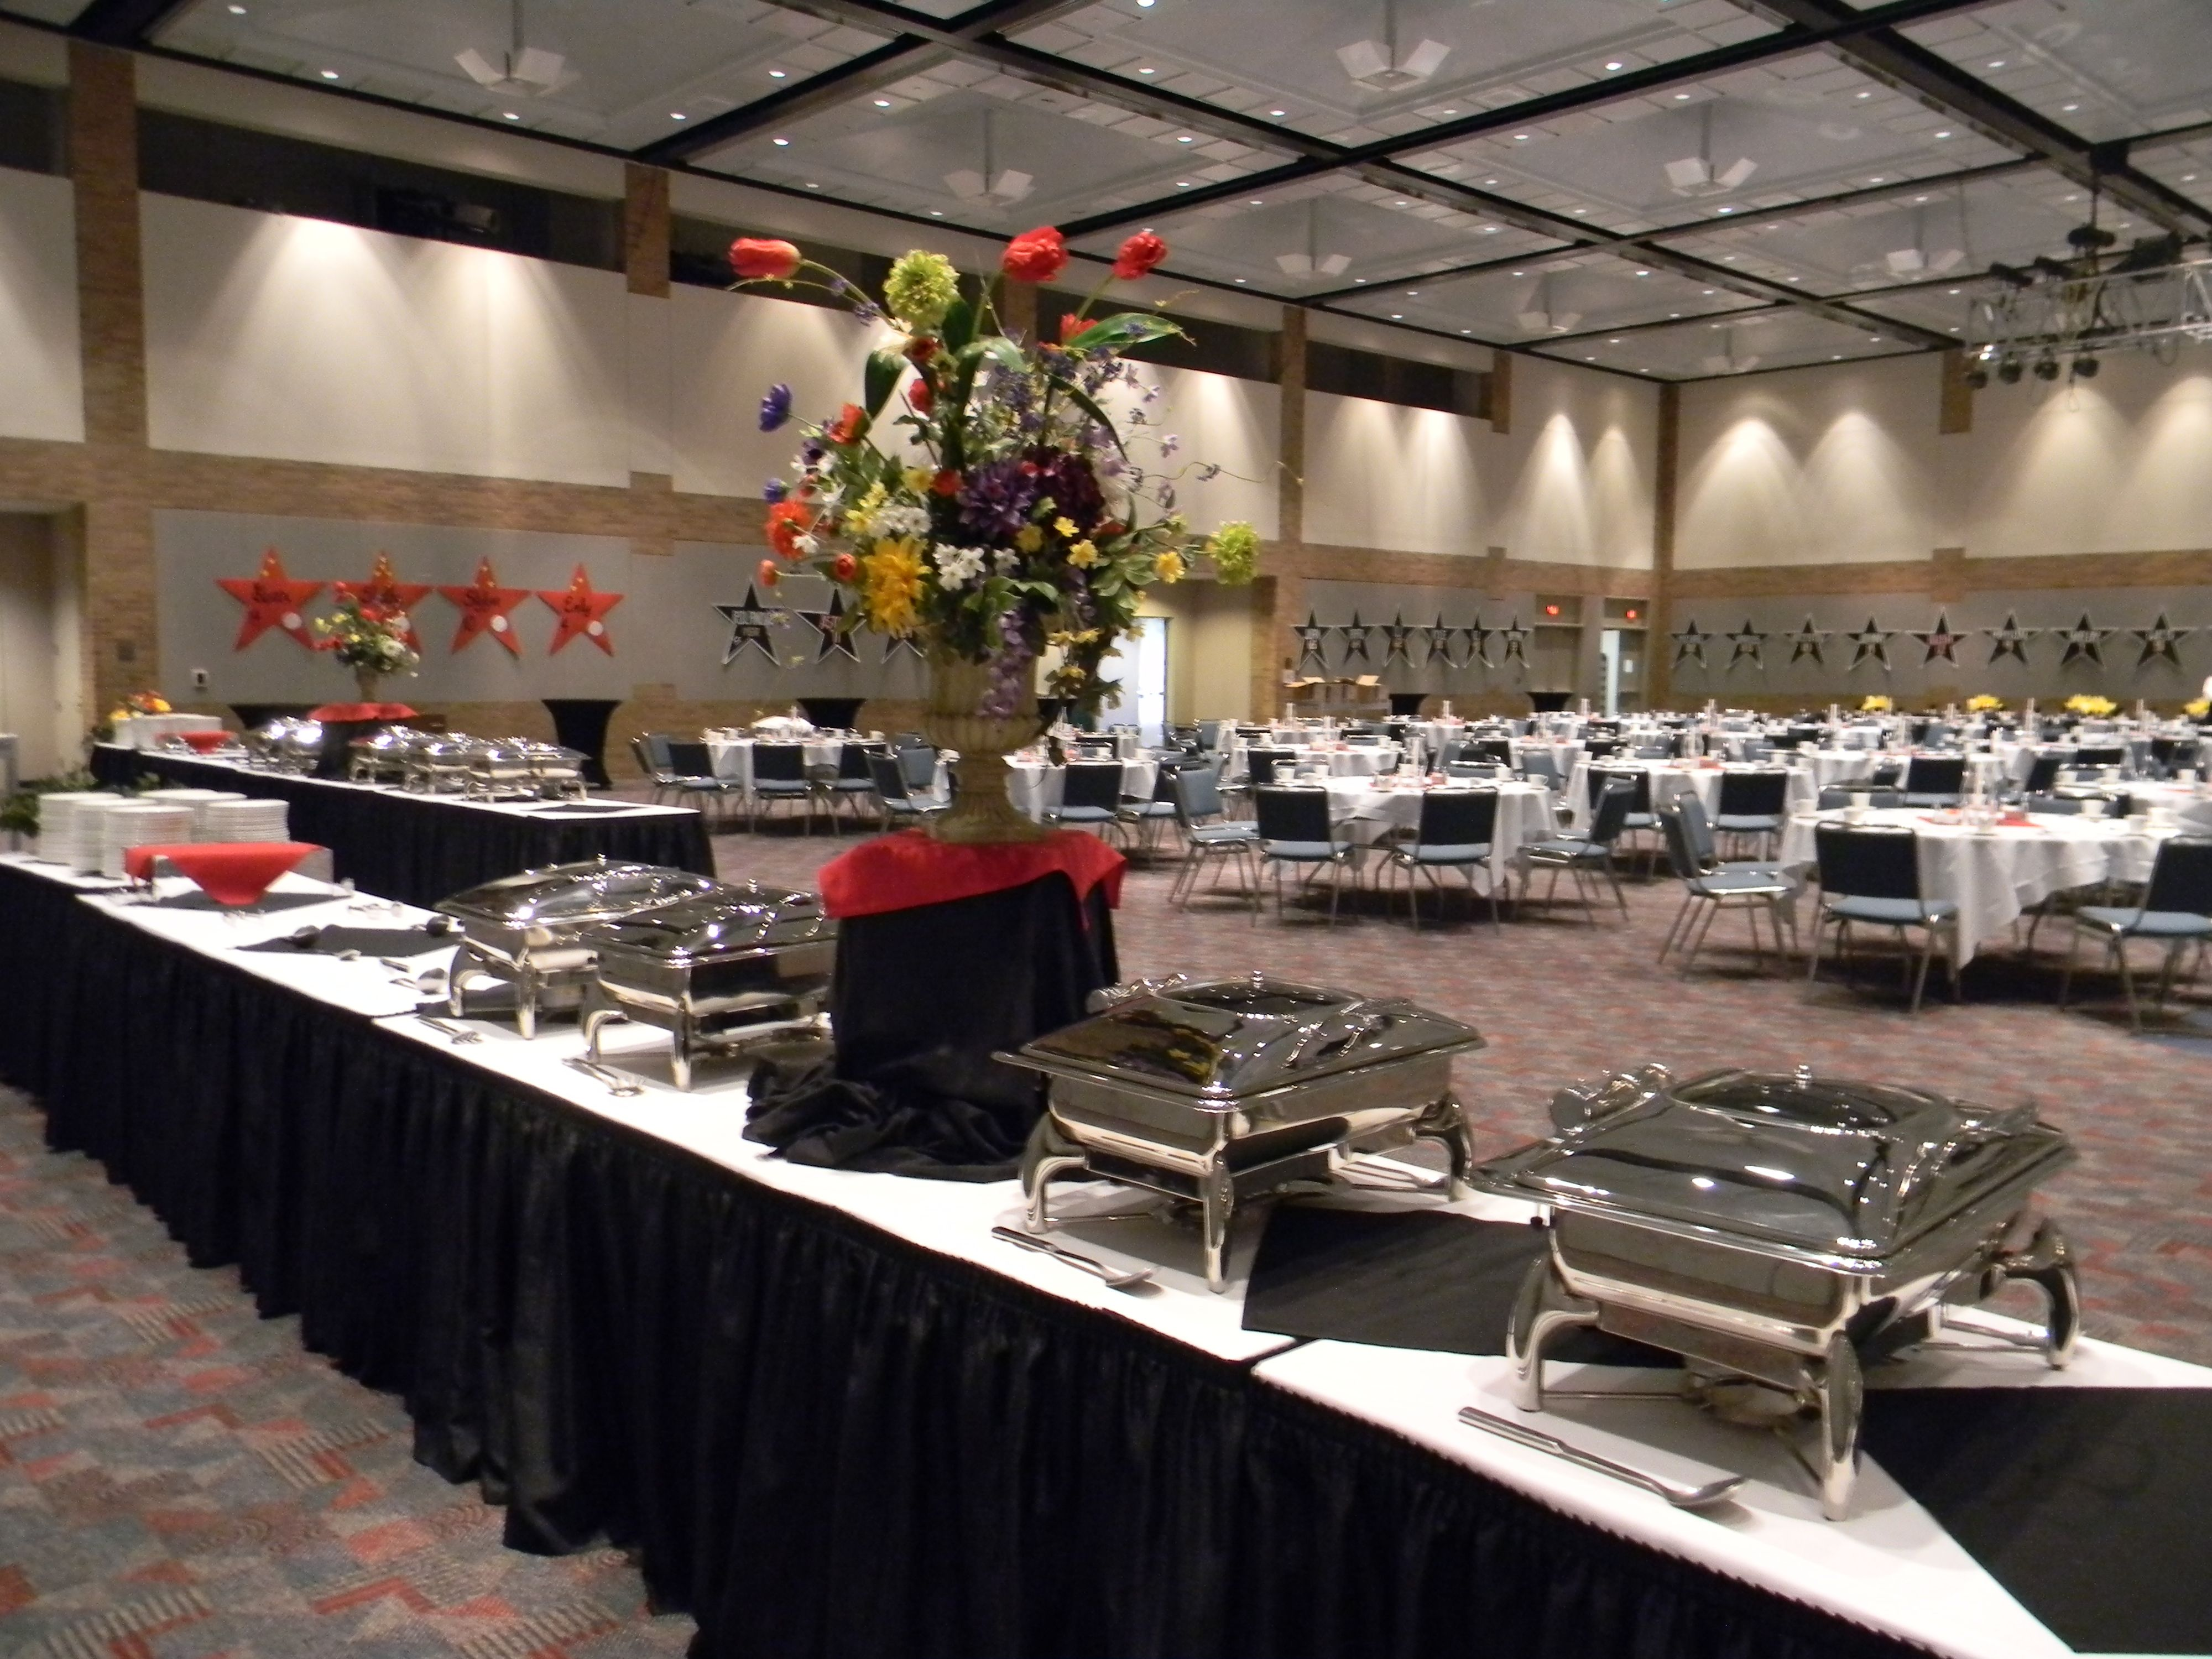 Set up for a high school athletic banquet. & Set up for a high school athletic banquet. | Plano Event Center ...